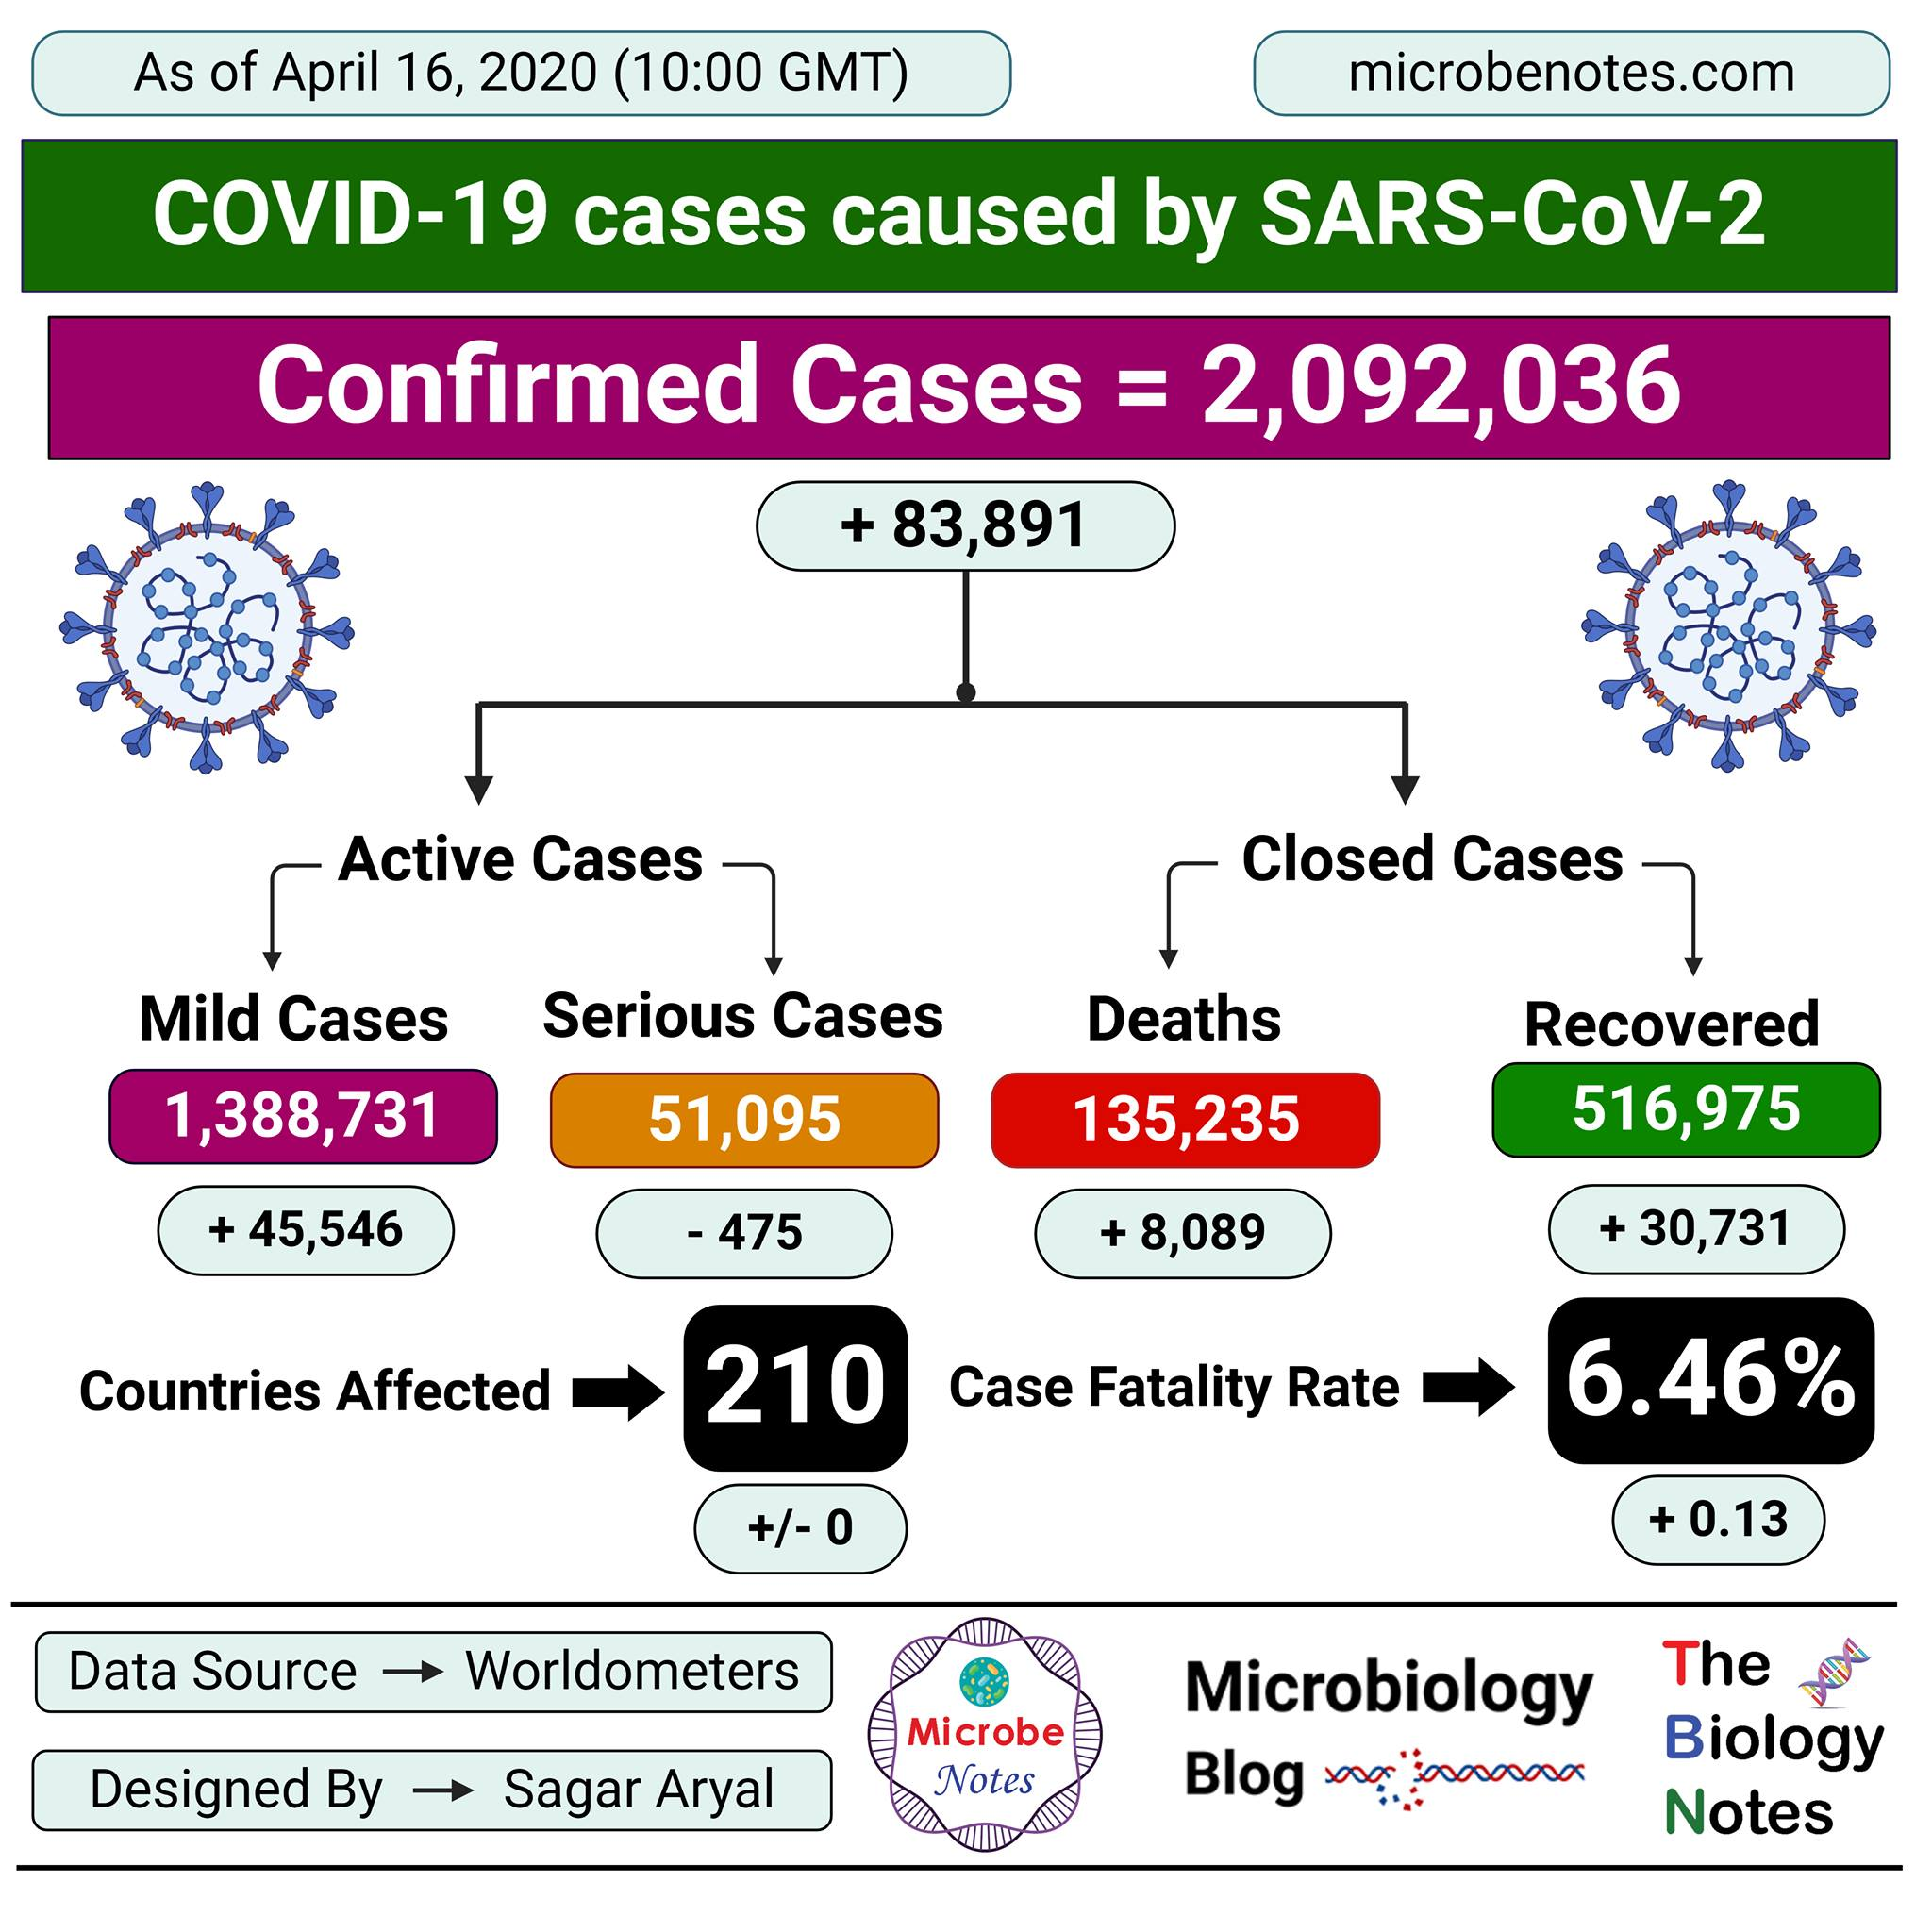 Epidemiology of COVID-19 caused by SARS-CoV-2 as of April 16, 2020